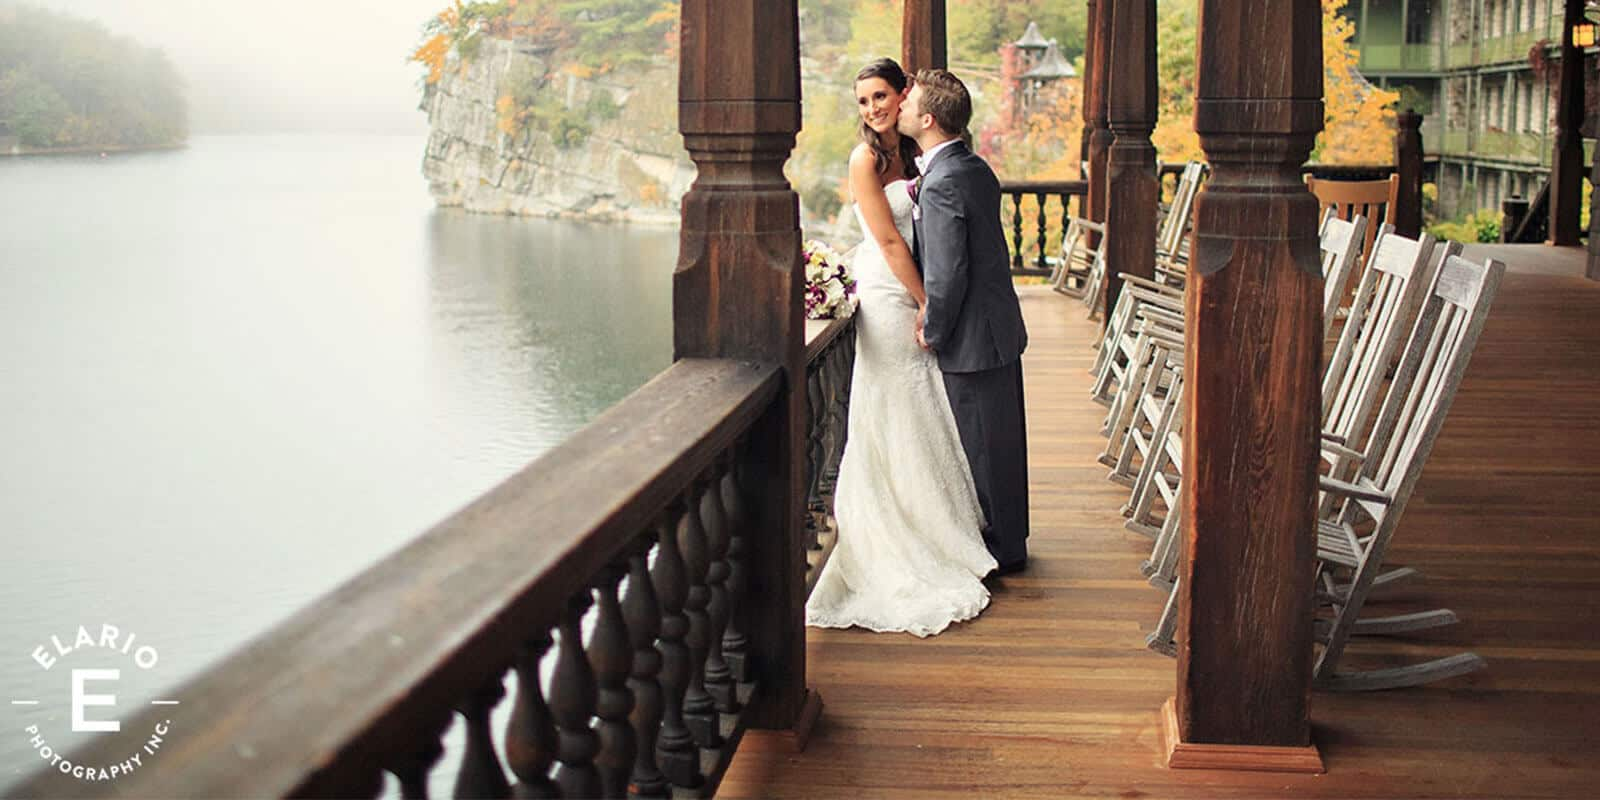 Bridal party photos at Mohonk